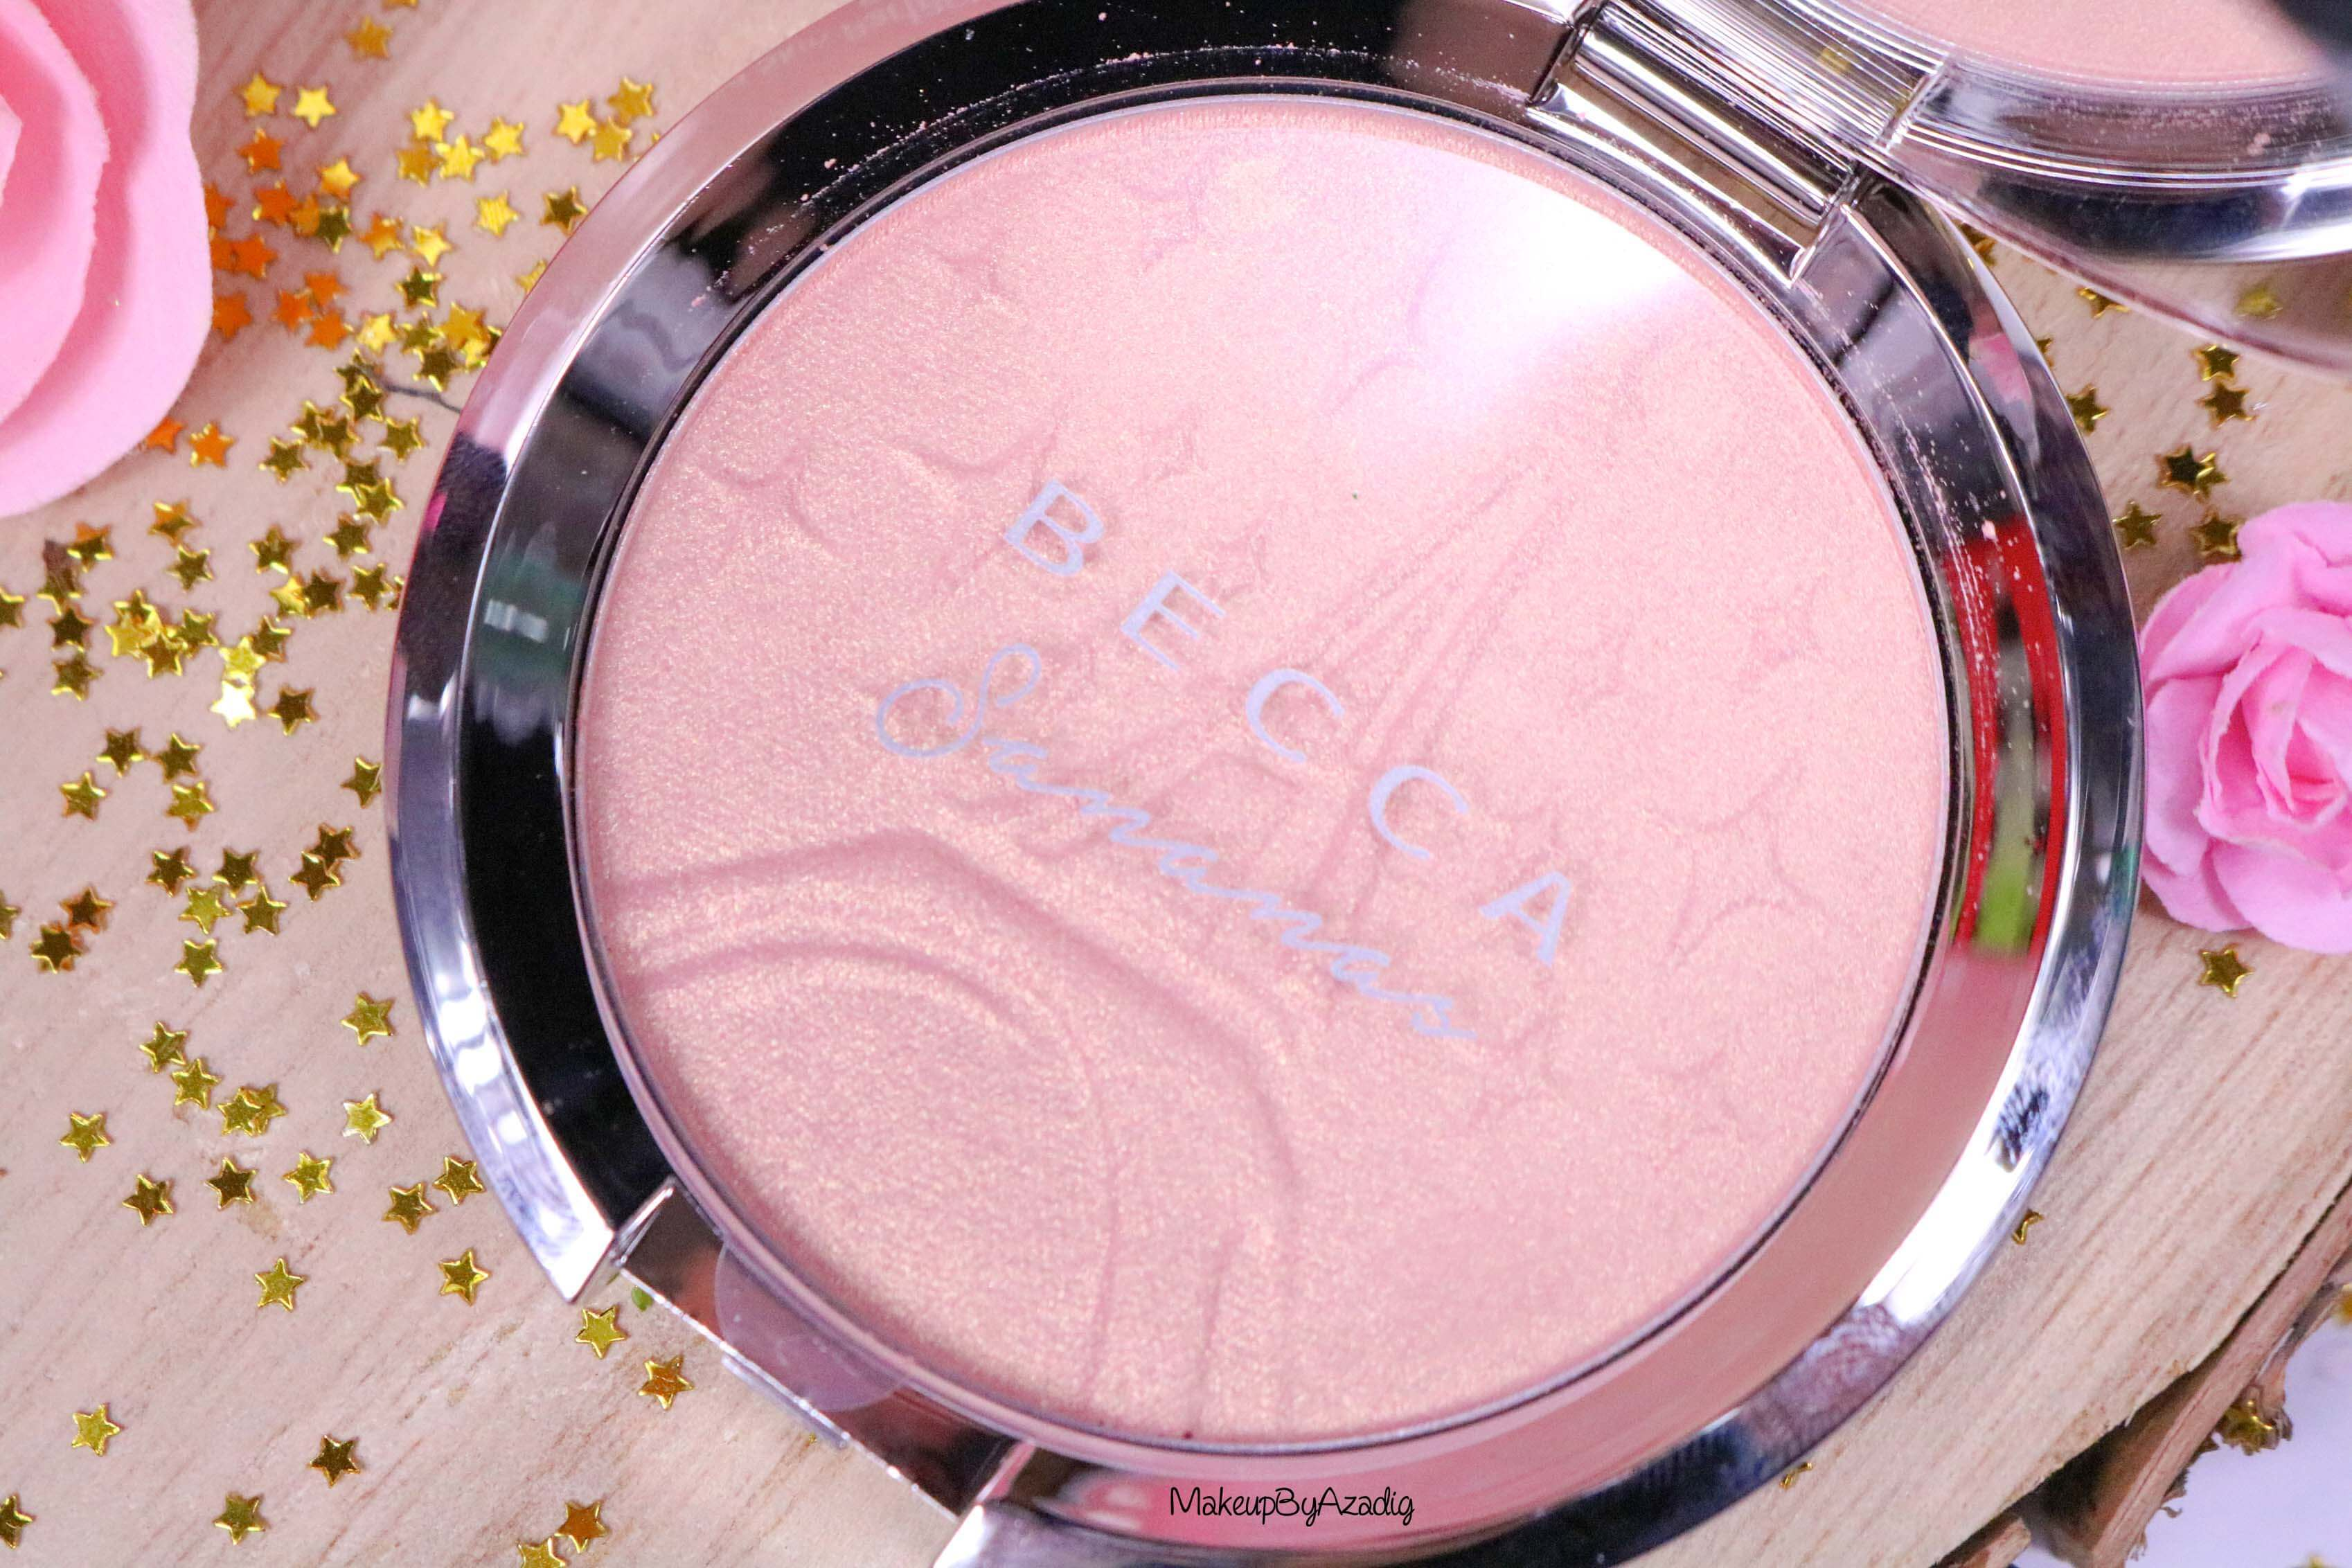 revue-highlighter-becca-sananas-parisian-lights-prix-avis-swatch-beccaxsananas-paris-youtuber-zoom